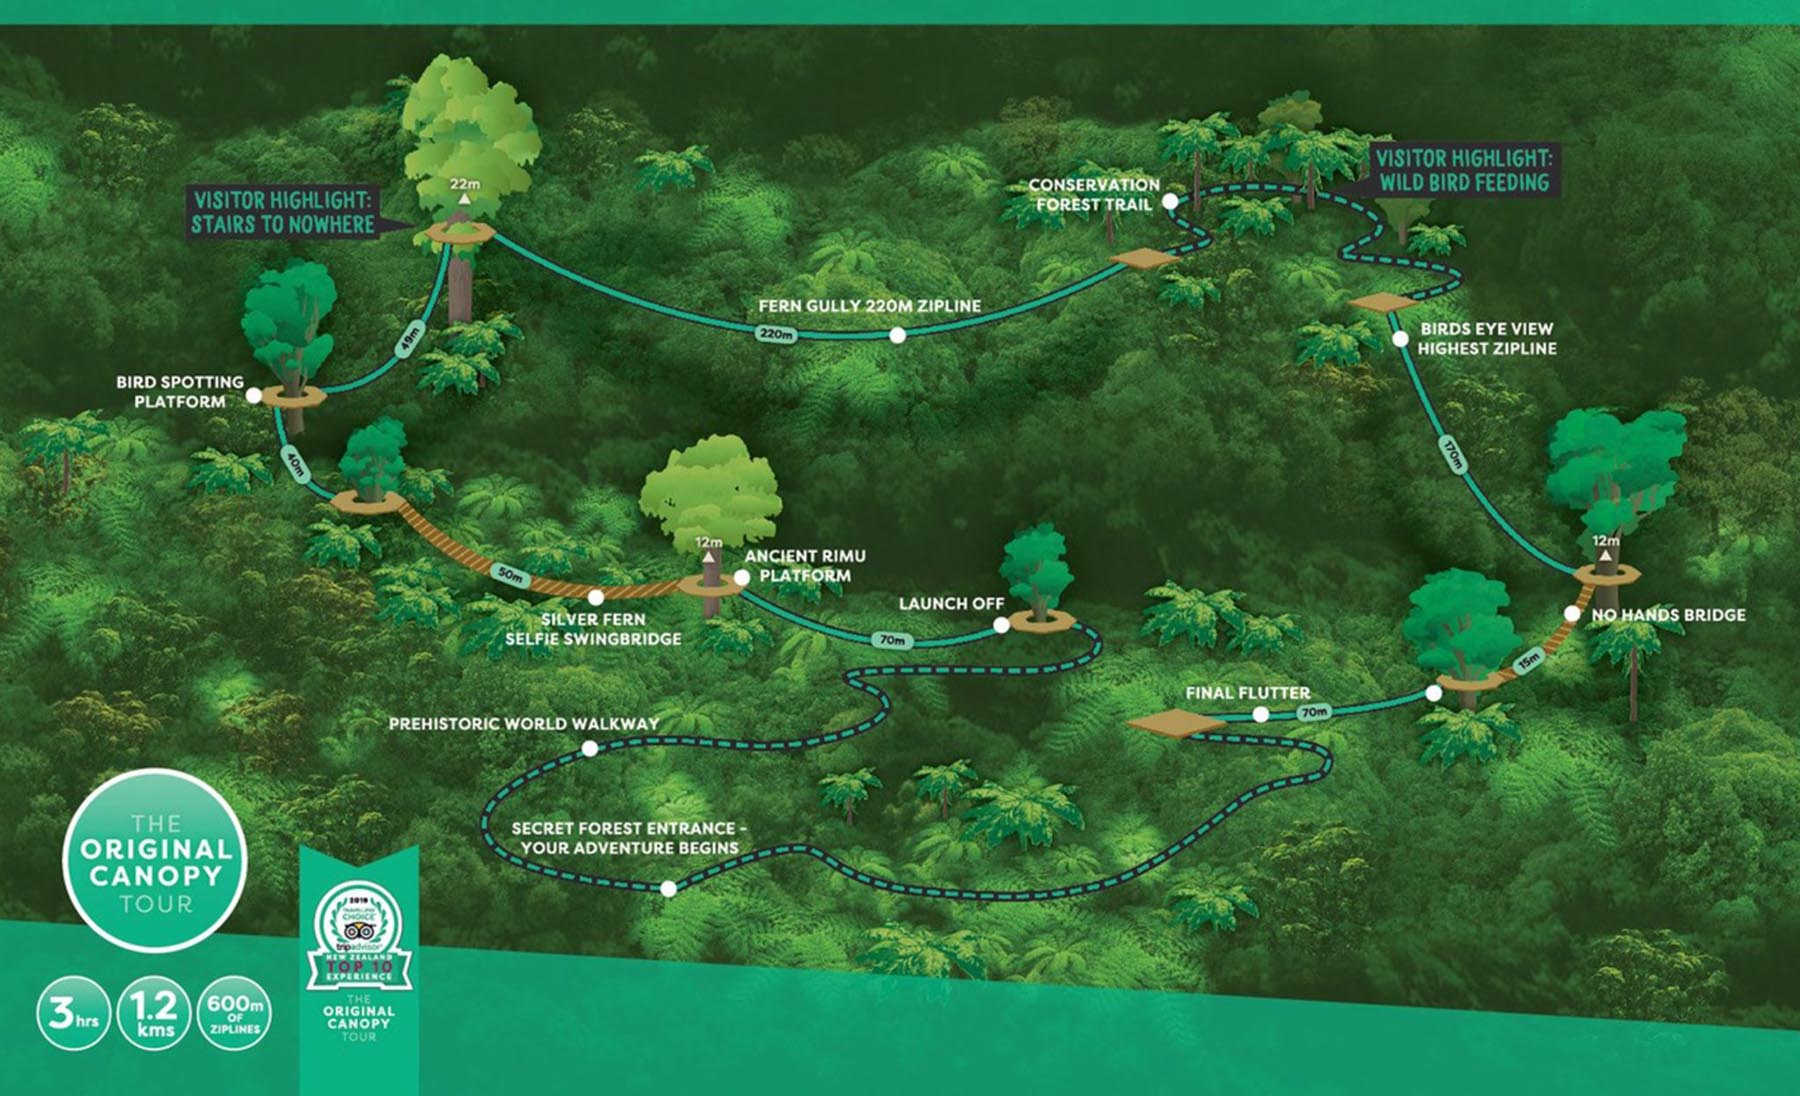 Original Canopy Tour – half screen map highlight